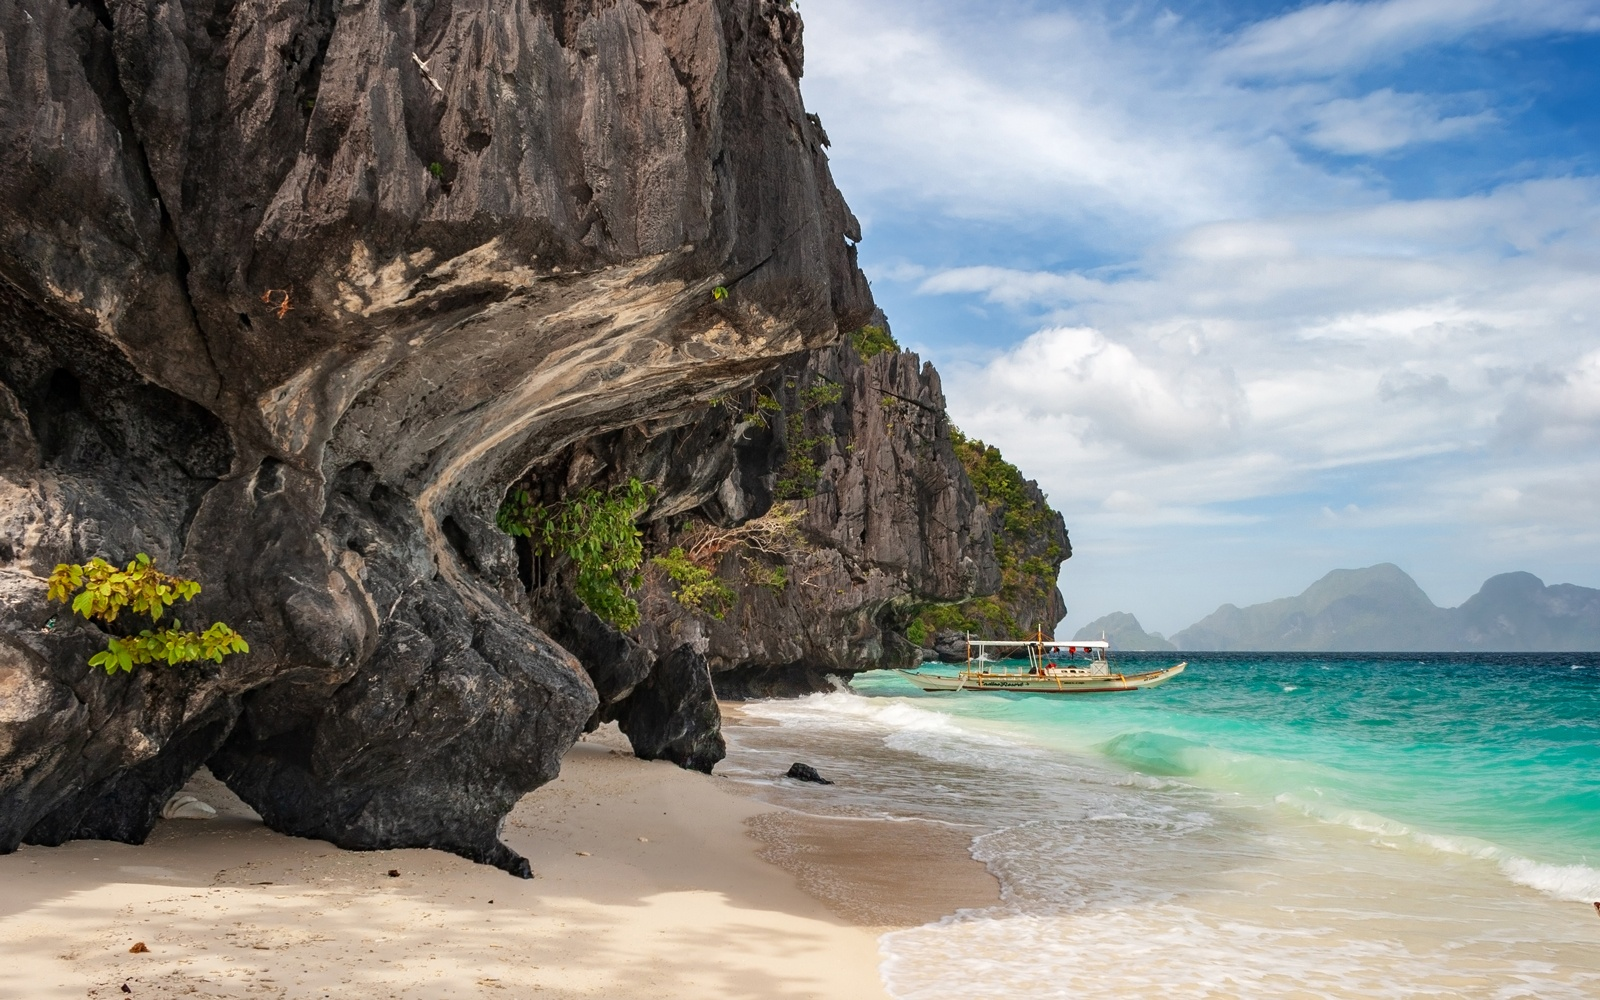 Palawan World's Best Islands